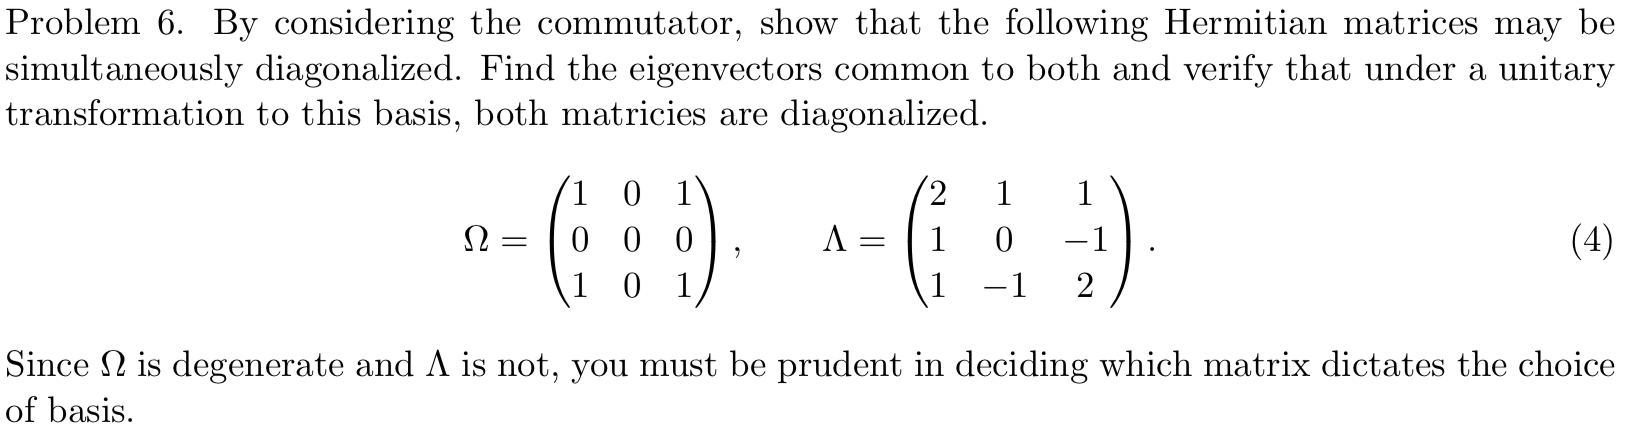 Problem 6 By considering the commutator, show that the following Hermitian matrices may be |simultaneously diagonalized. Find the eigenvectors common to both and verify that under a unitary transformation to this basis, both matricies are diagonalized 2 1 0 1 1 1 (4) 0 0 0 1 -1 2 1 0 1 -1 Since is degenerate and A is not, you must be prudent in deciding which matrix dictates the choice of basis